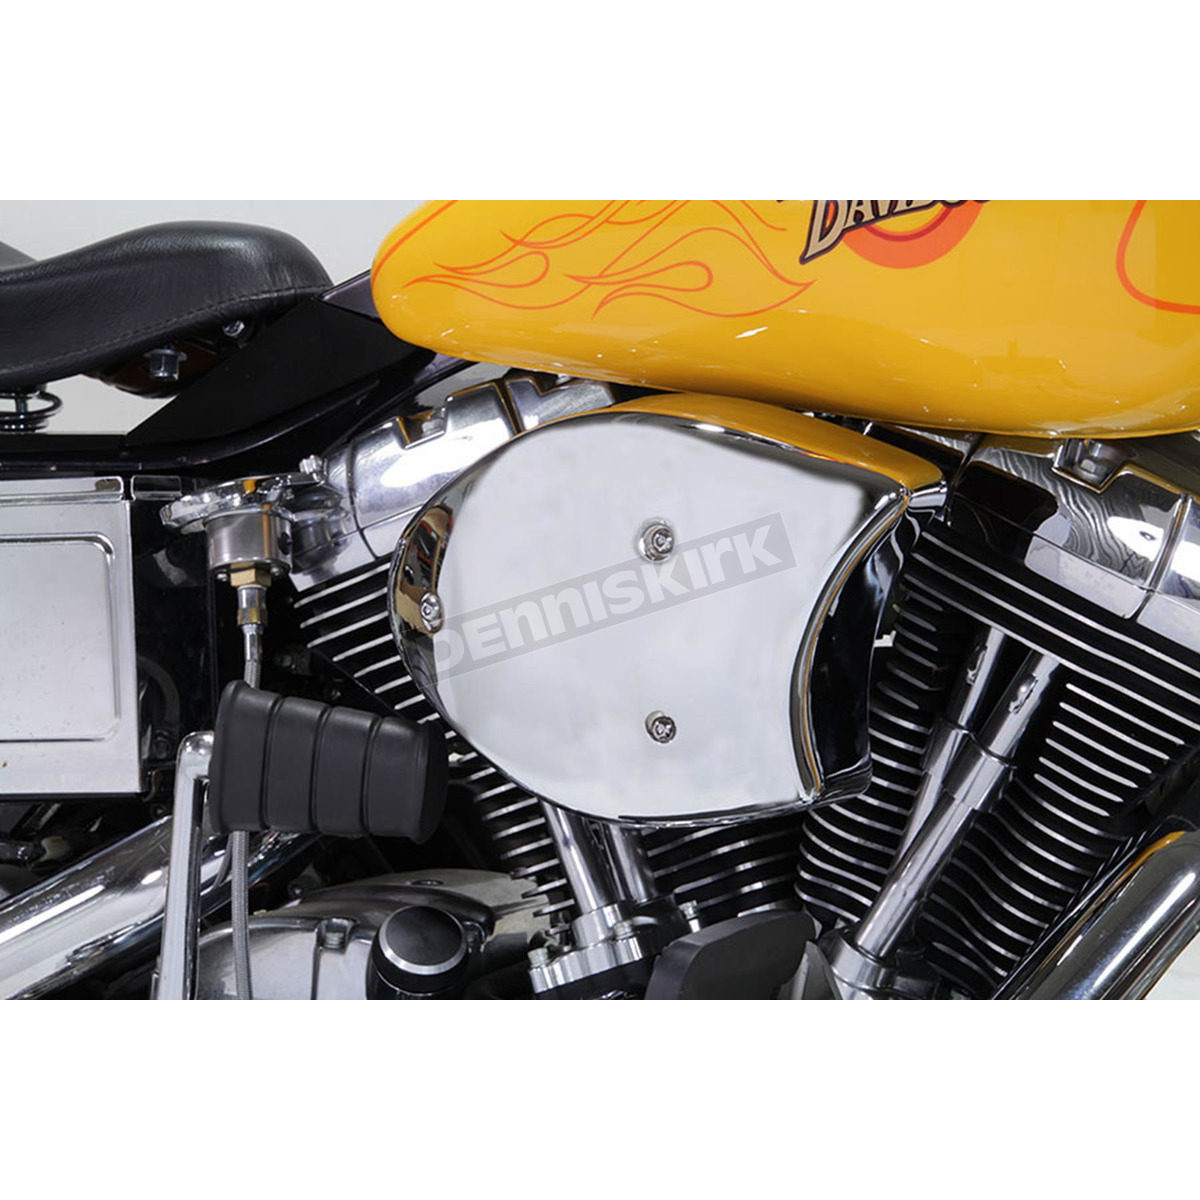 Air Cleaners For Motorcycles : Wyatt gatling chrome air cleaner assembly  harley